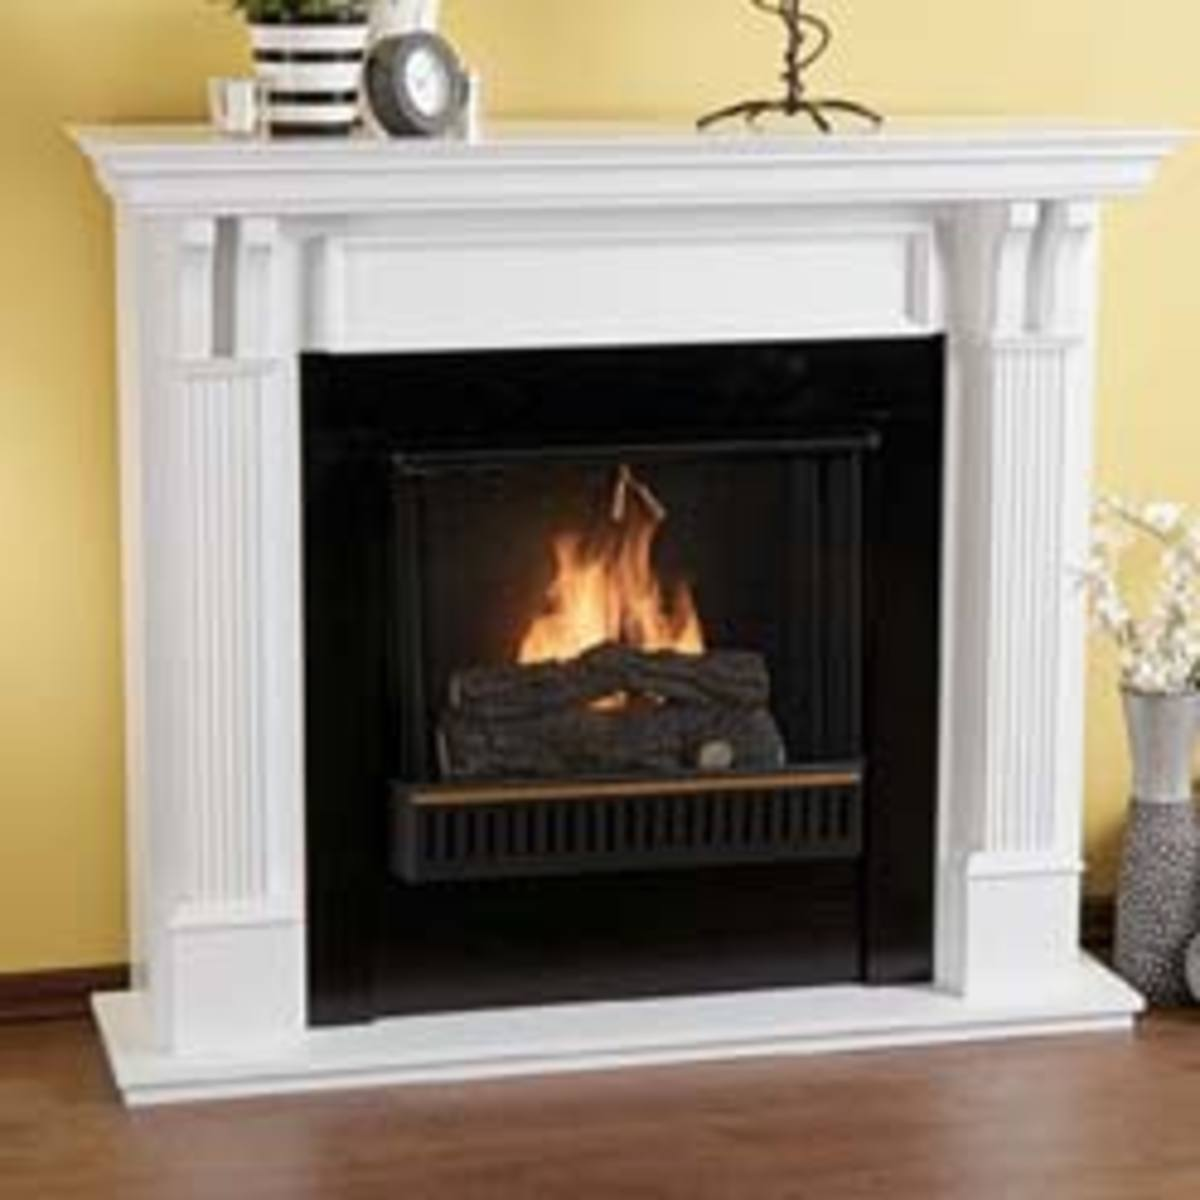 A more traditional fireplace for gel fuel application